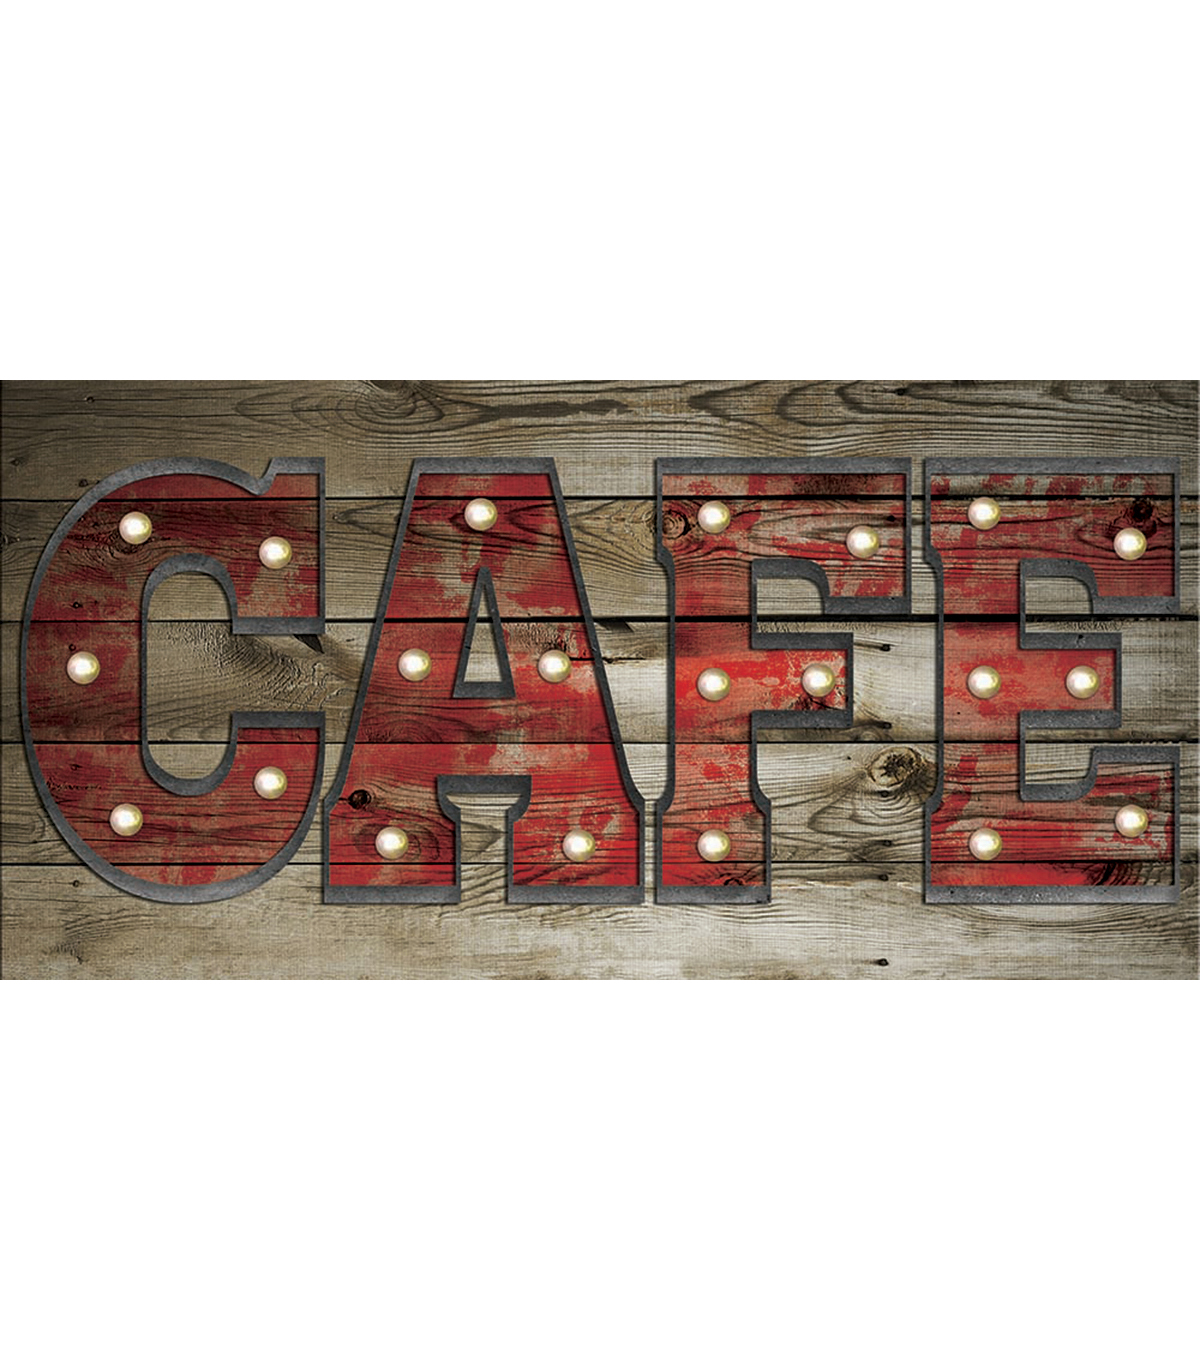 24X12 CAFÉ Wood & Metal Wall Decor With Lights